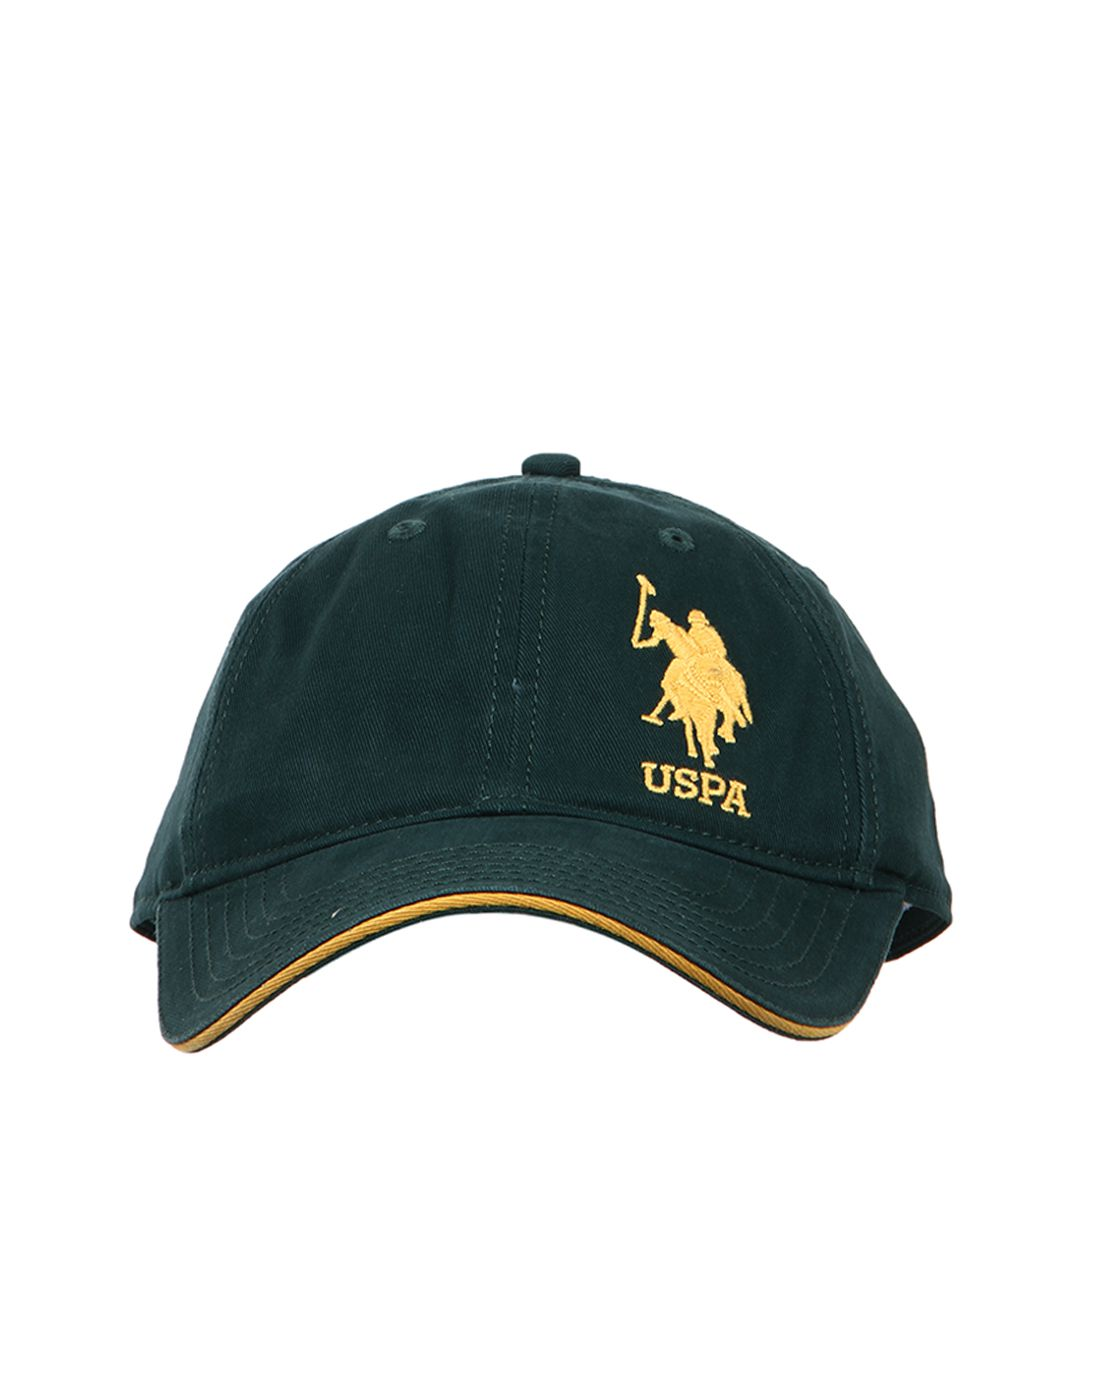 U.S. Polo Assn. Green Plain Cotton Caps